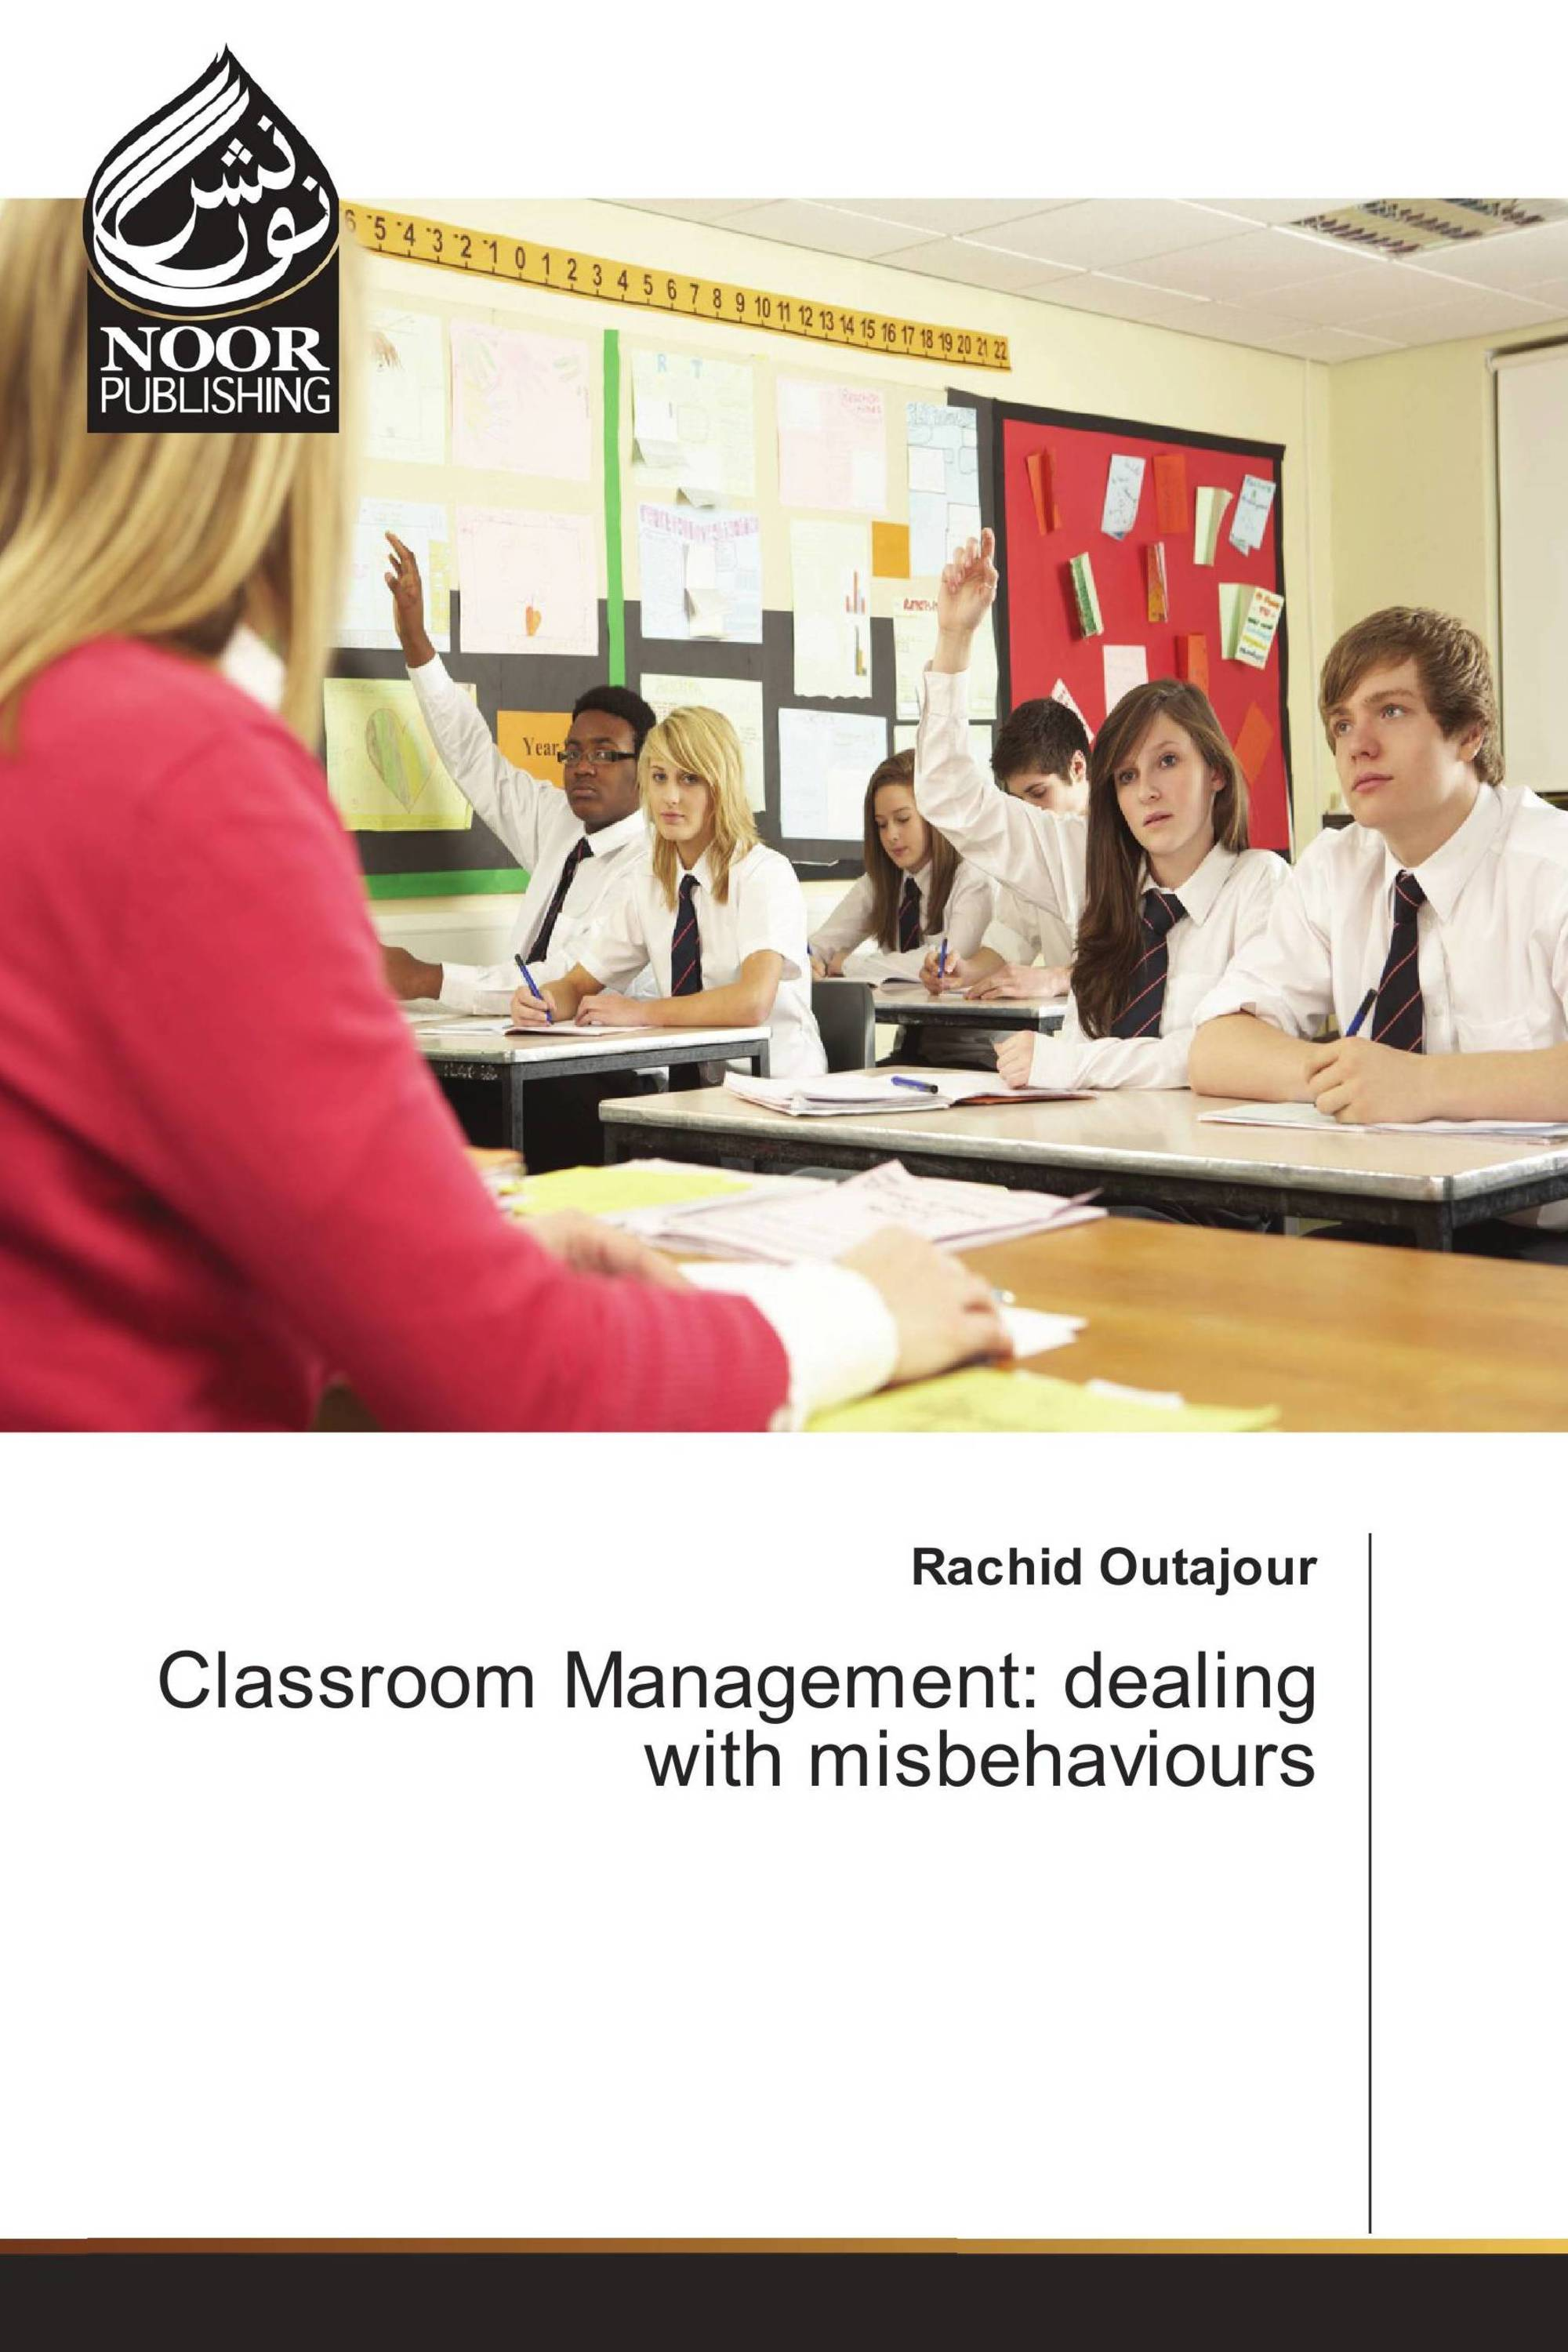 Classroom Management: dealing with misbehaviours